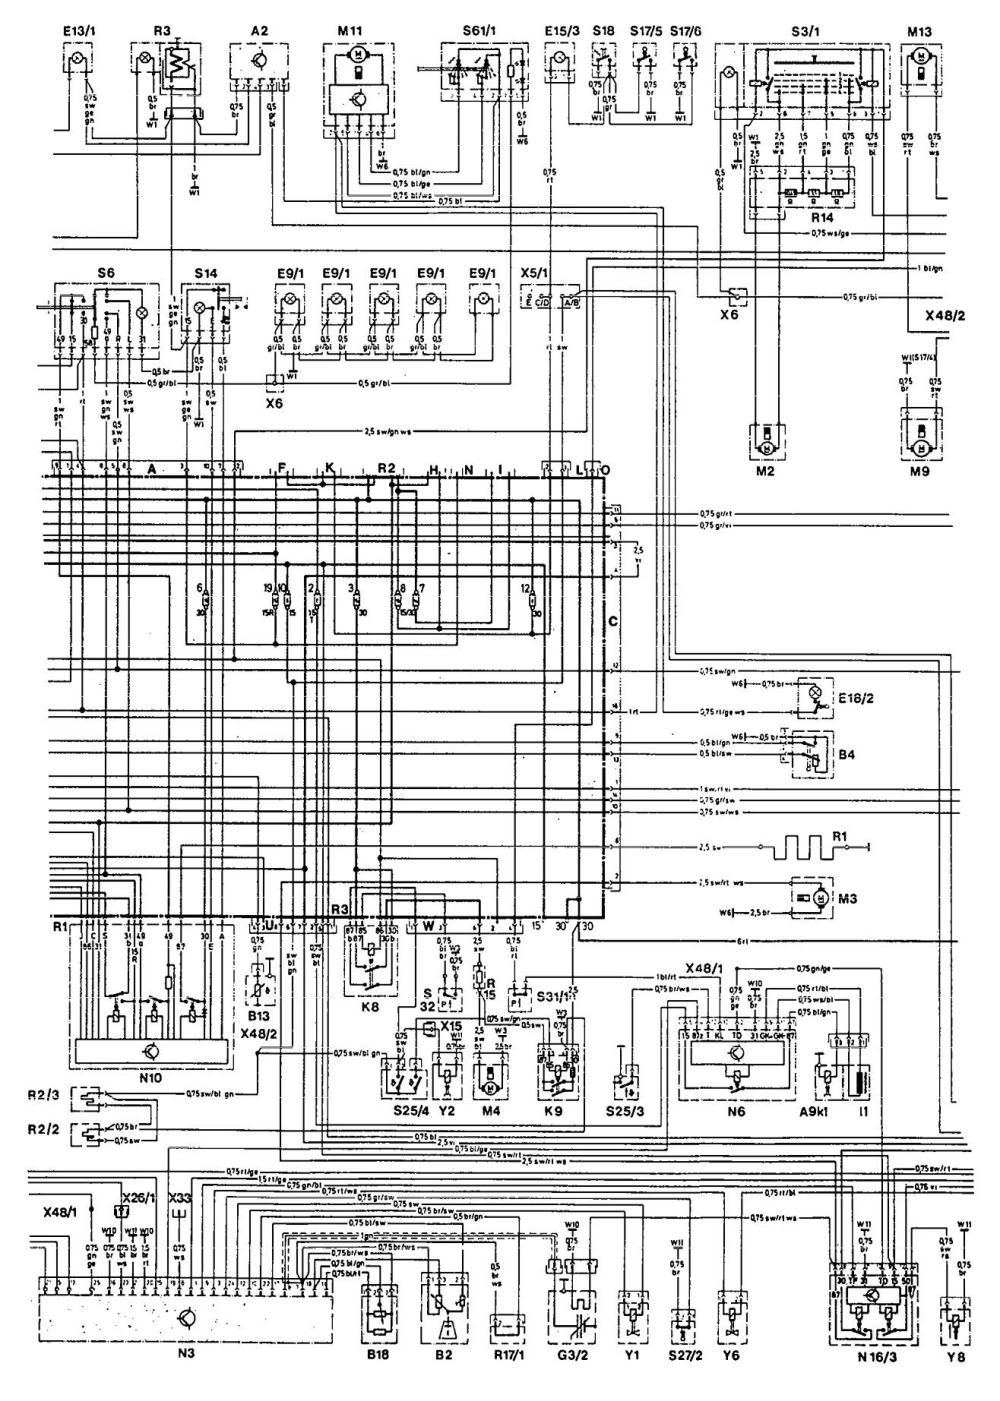 medium resolution of mercedes 190e 1992 wiring diagrams cooling fans carknowledge 1985 corvette schematic 1992 corvette cooling